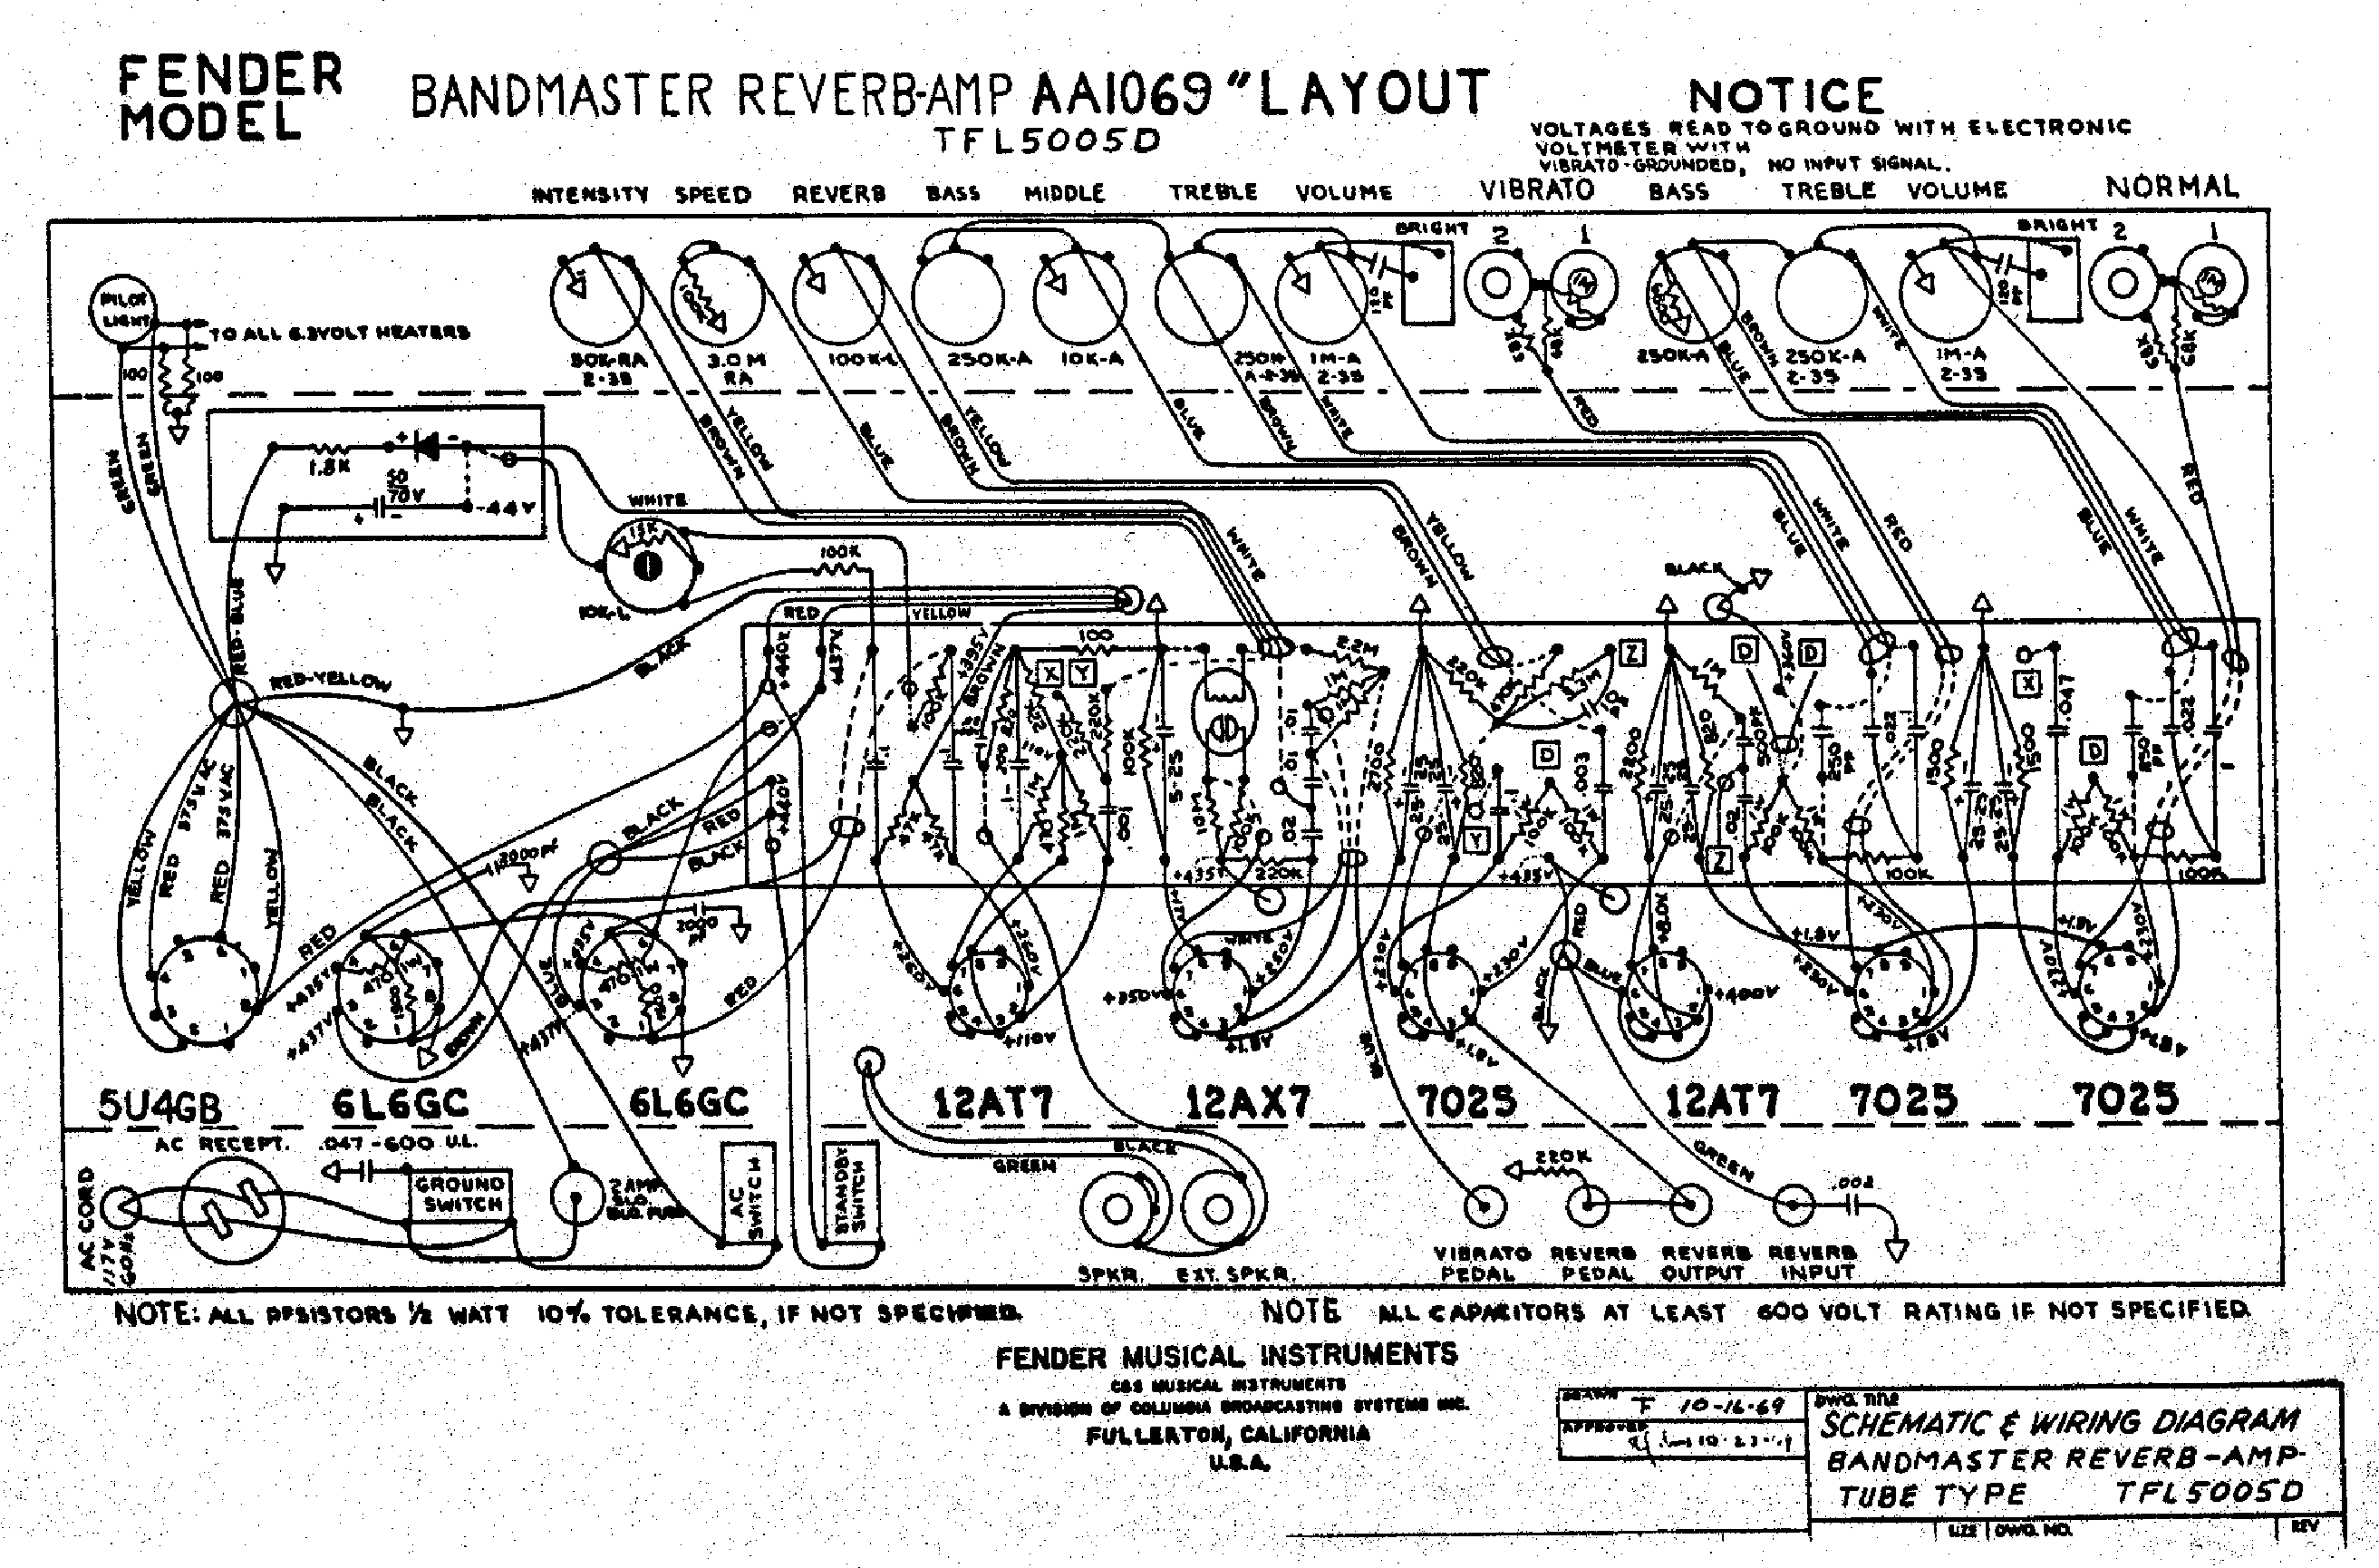 Fender Bandmaster Reverb Aa Layout Service Manual